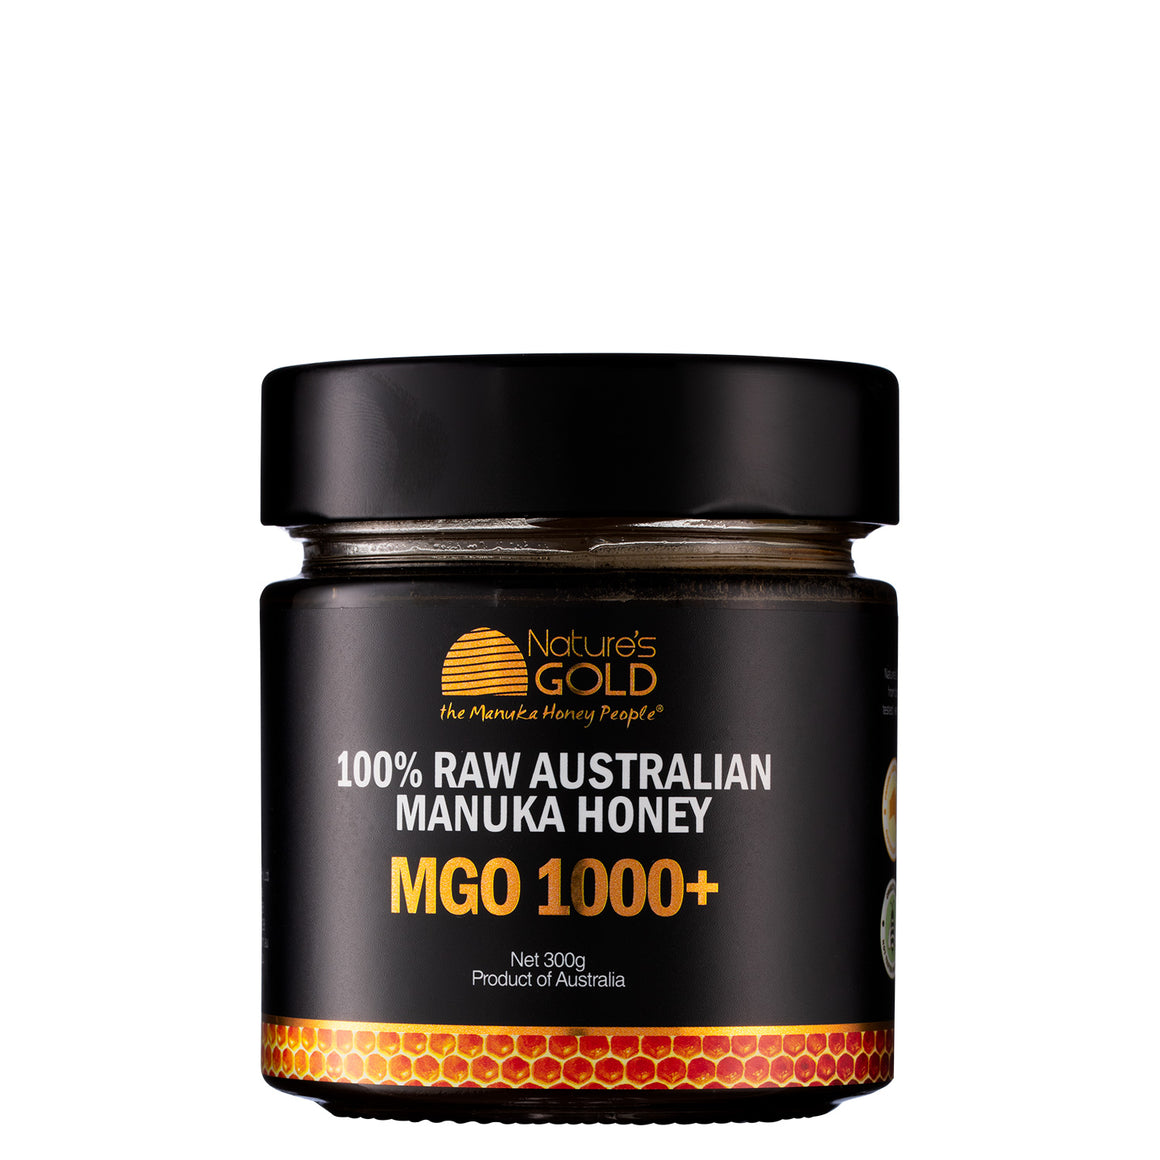 Premium Manuka Honey Collection MGO 1000+